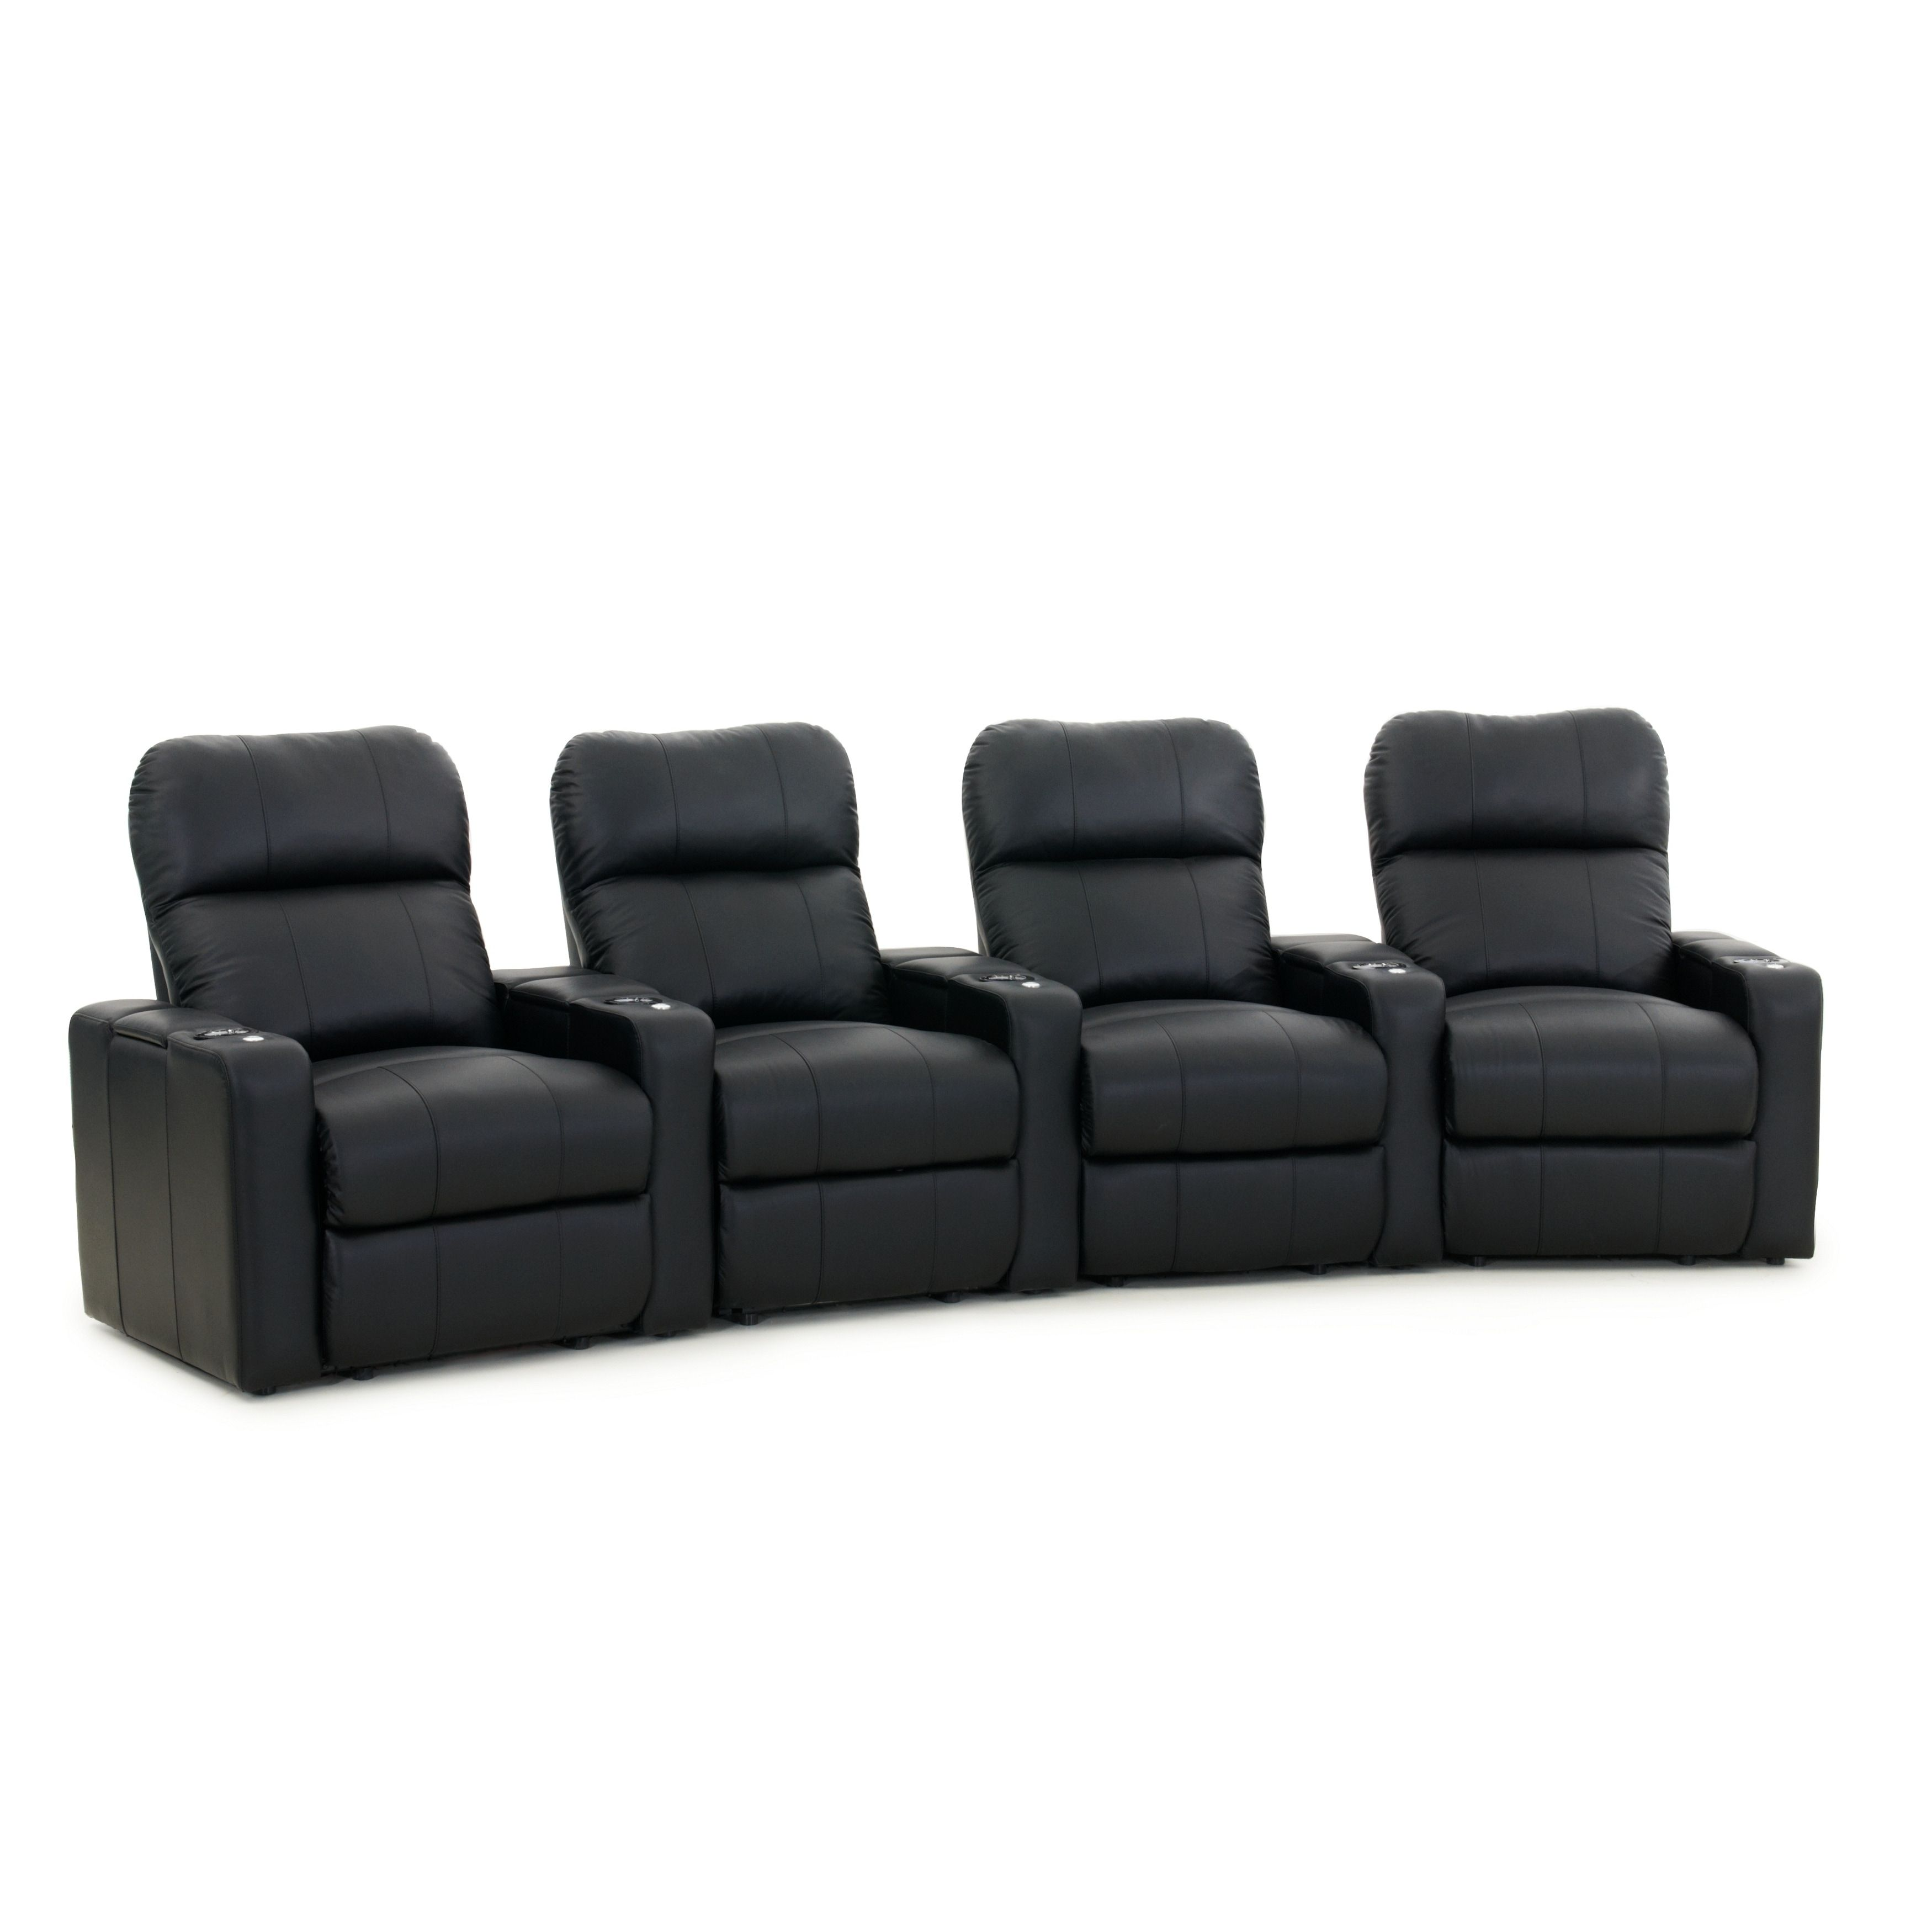 Octane Turbo XL700 Power Leather Home Theater Seating Set (Row of 4 ...